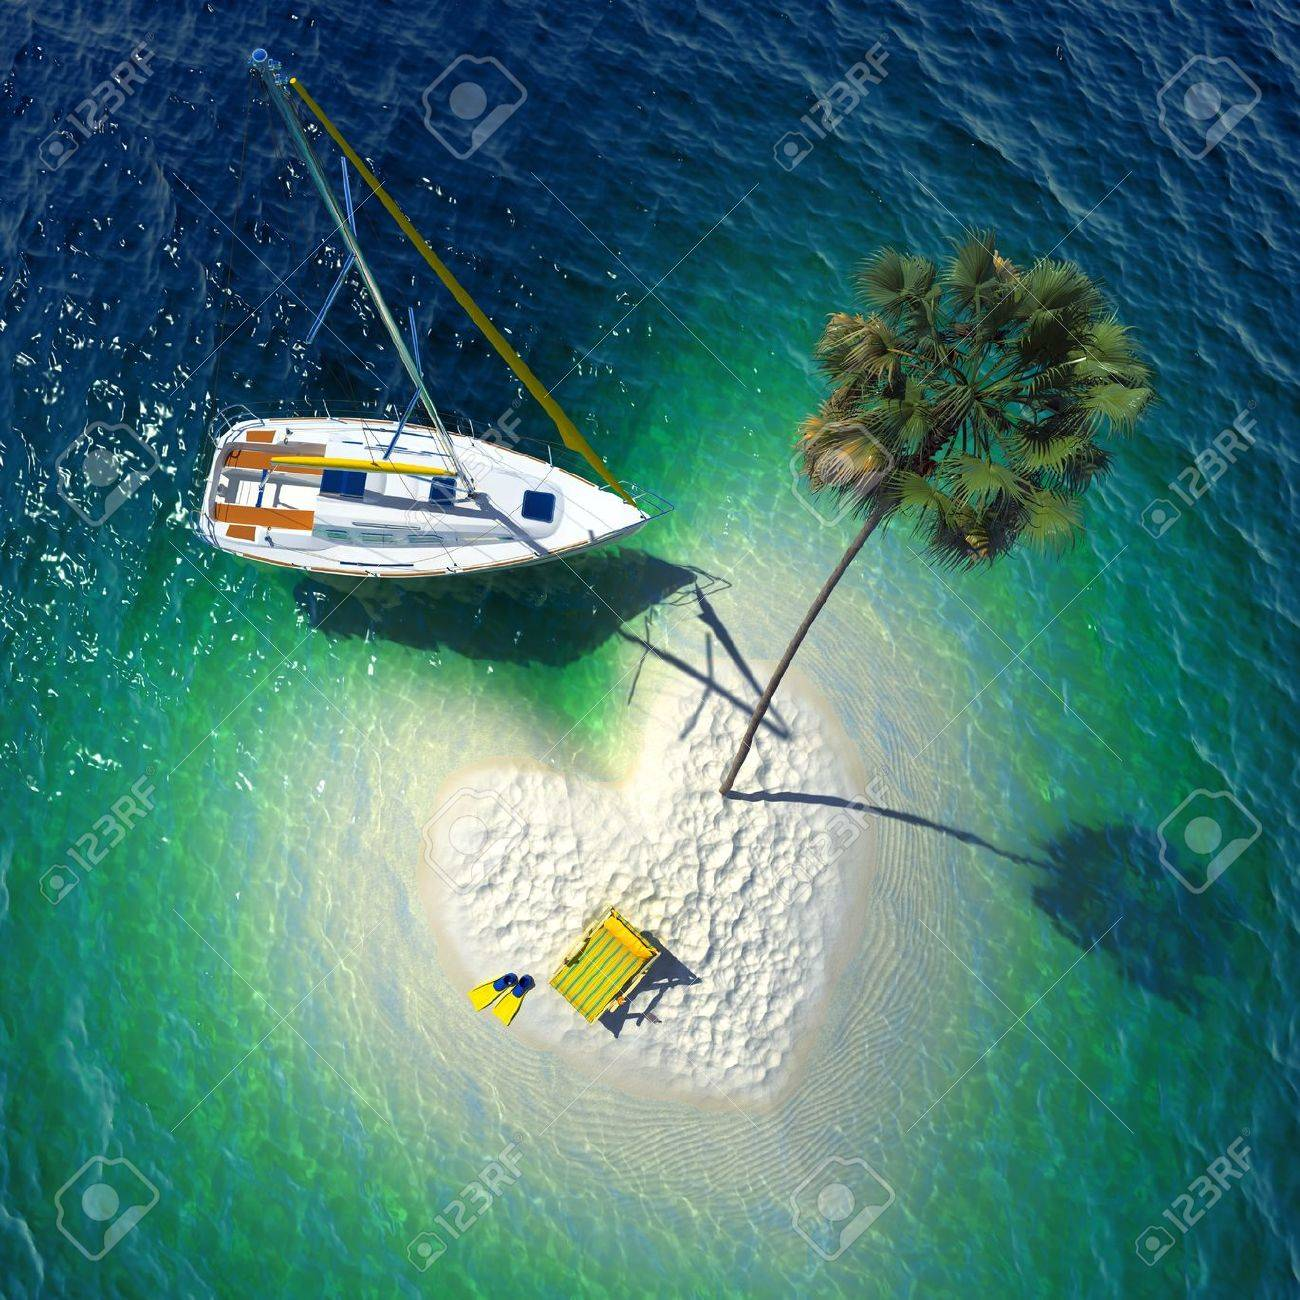 Tropical Island Yacht Concept Of A Wonderful Holiday In A Tropical Paradise A Small